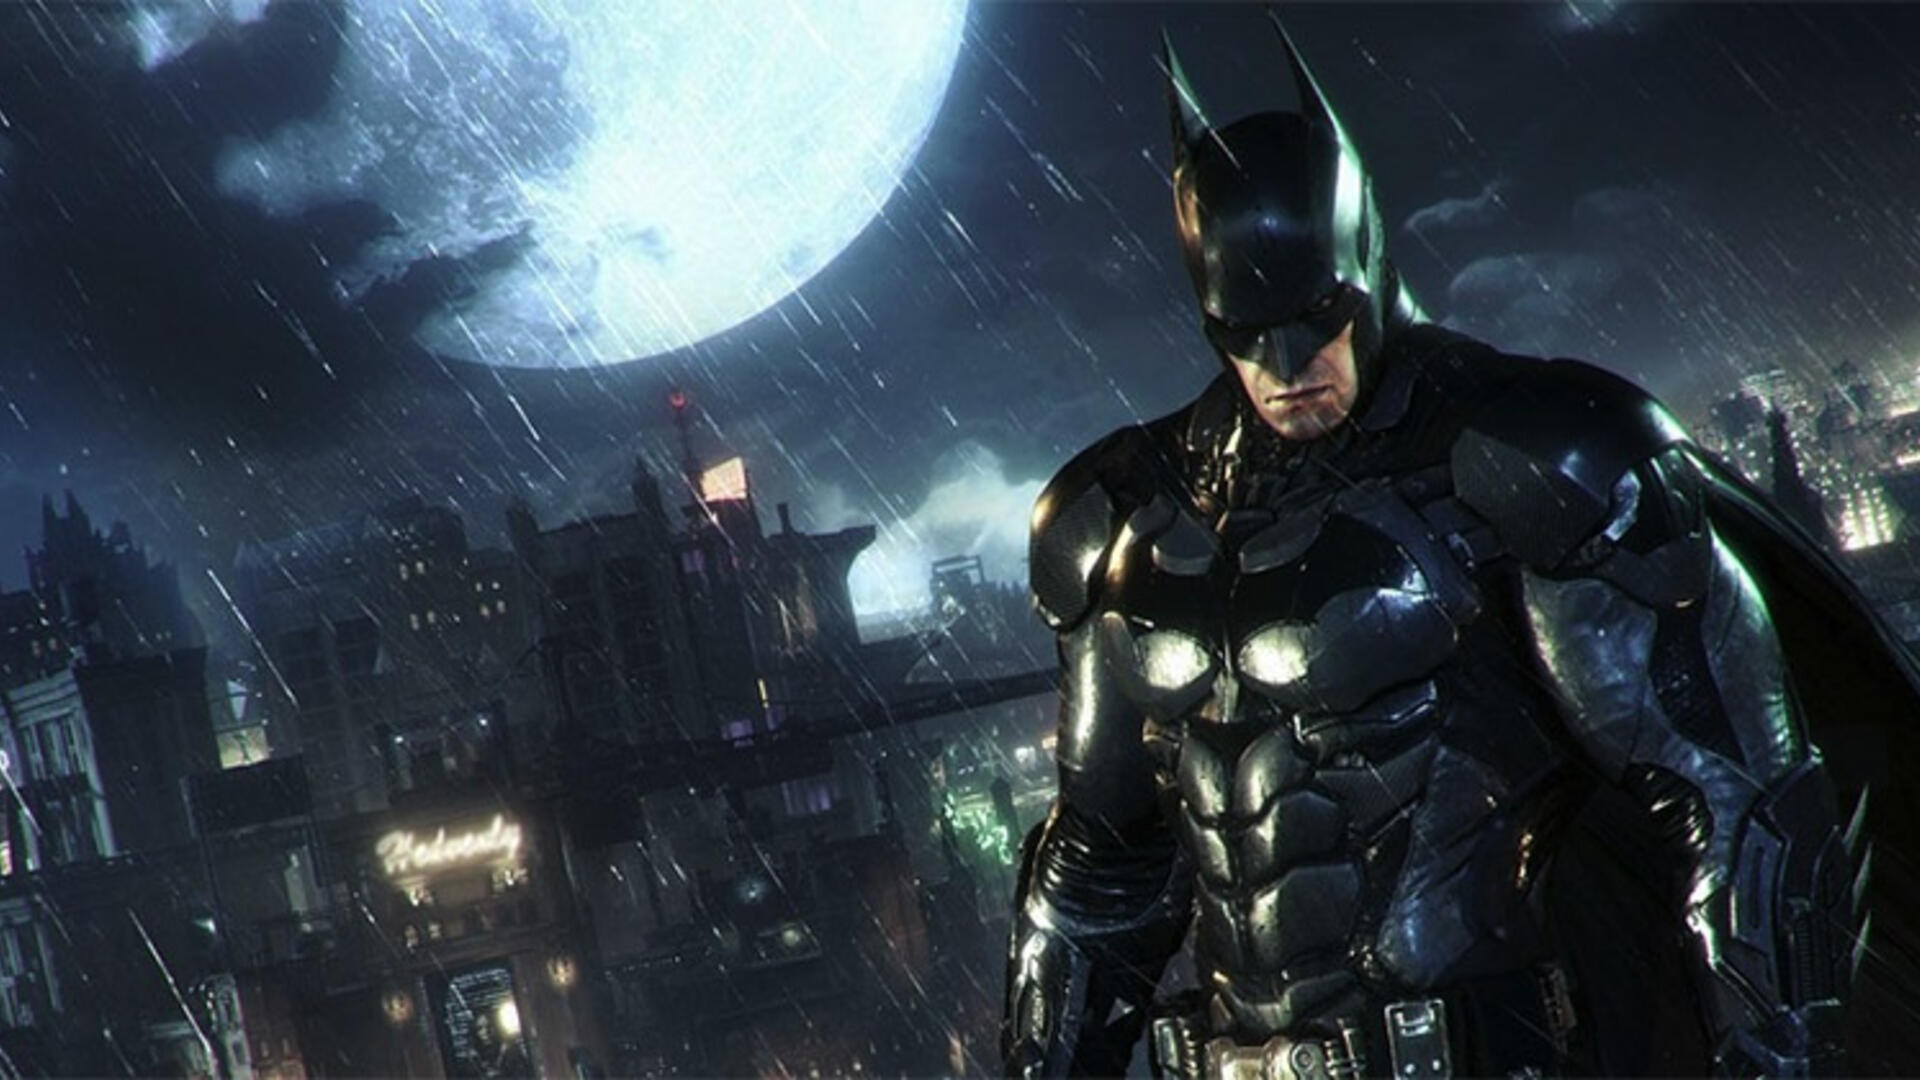 Batman: Arkham VR PlayStation 4 Review: A Real Stand-Up Hero